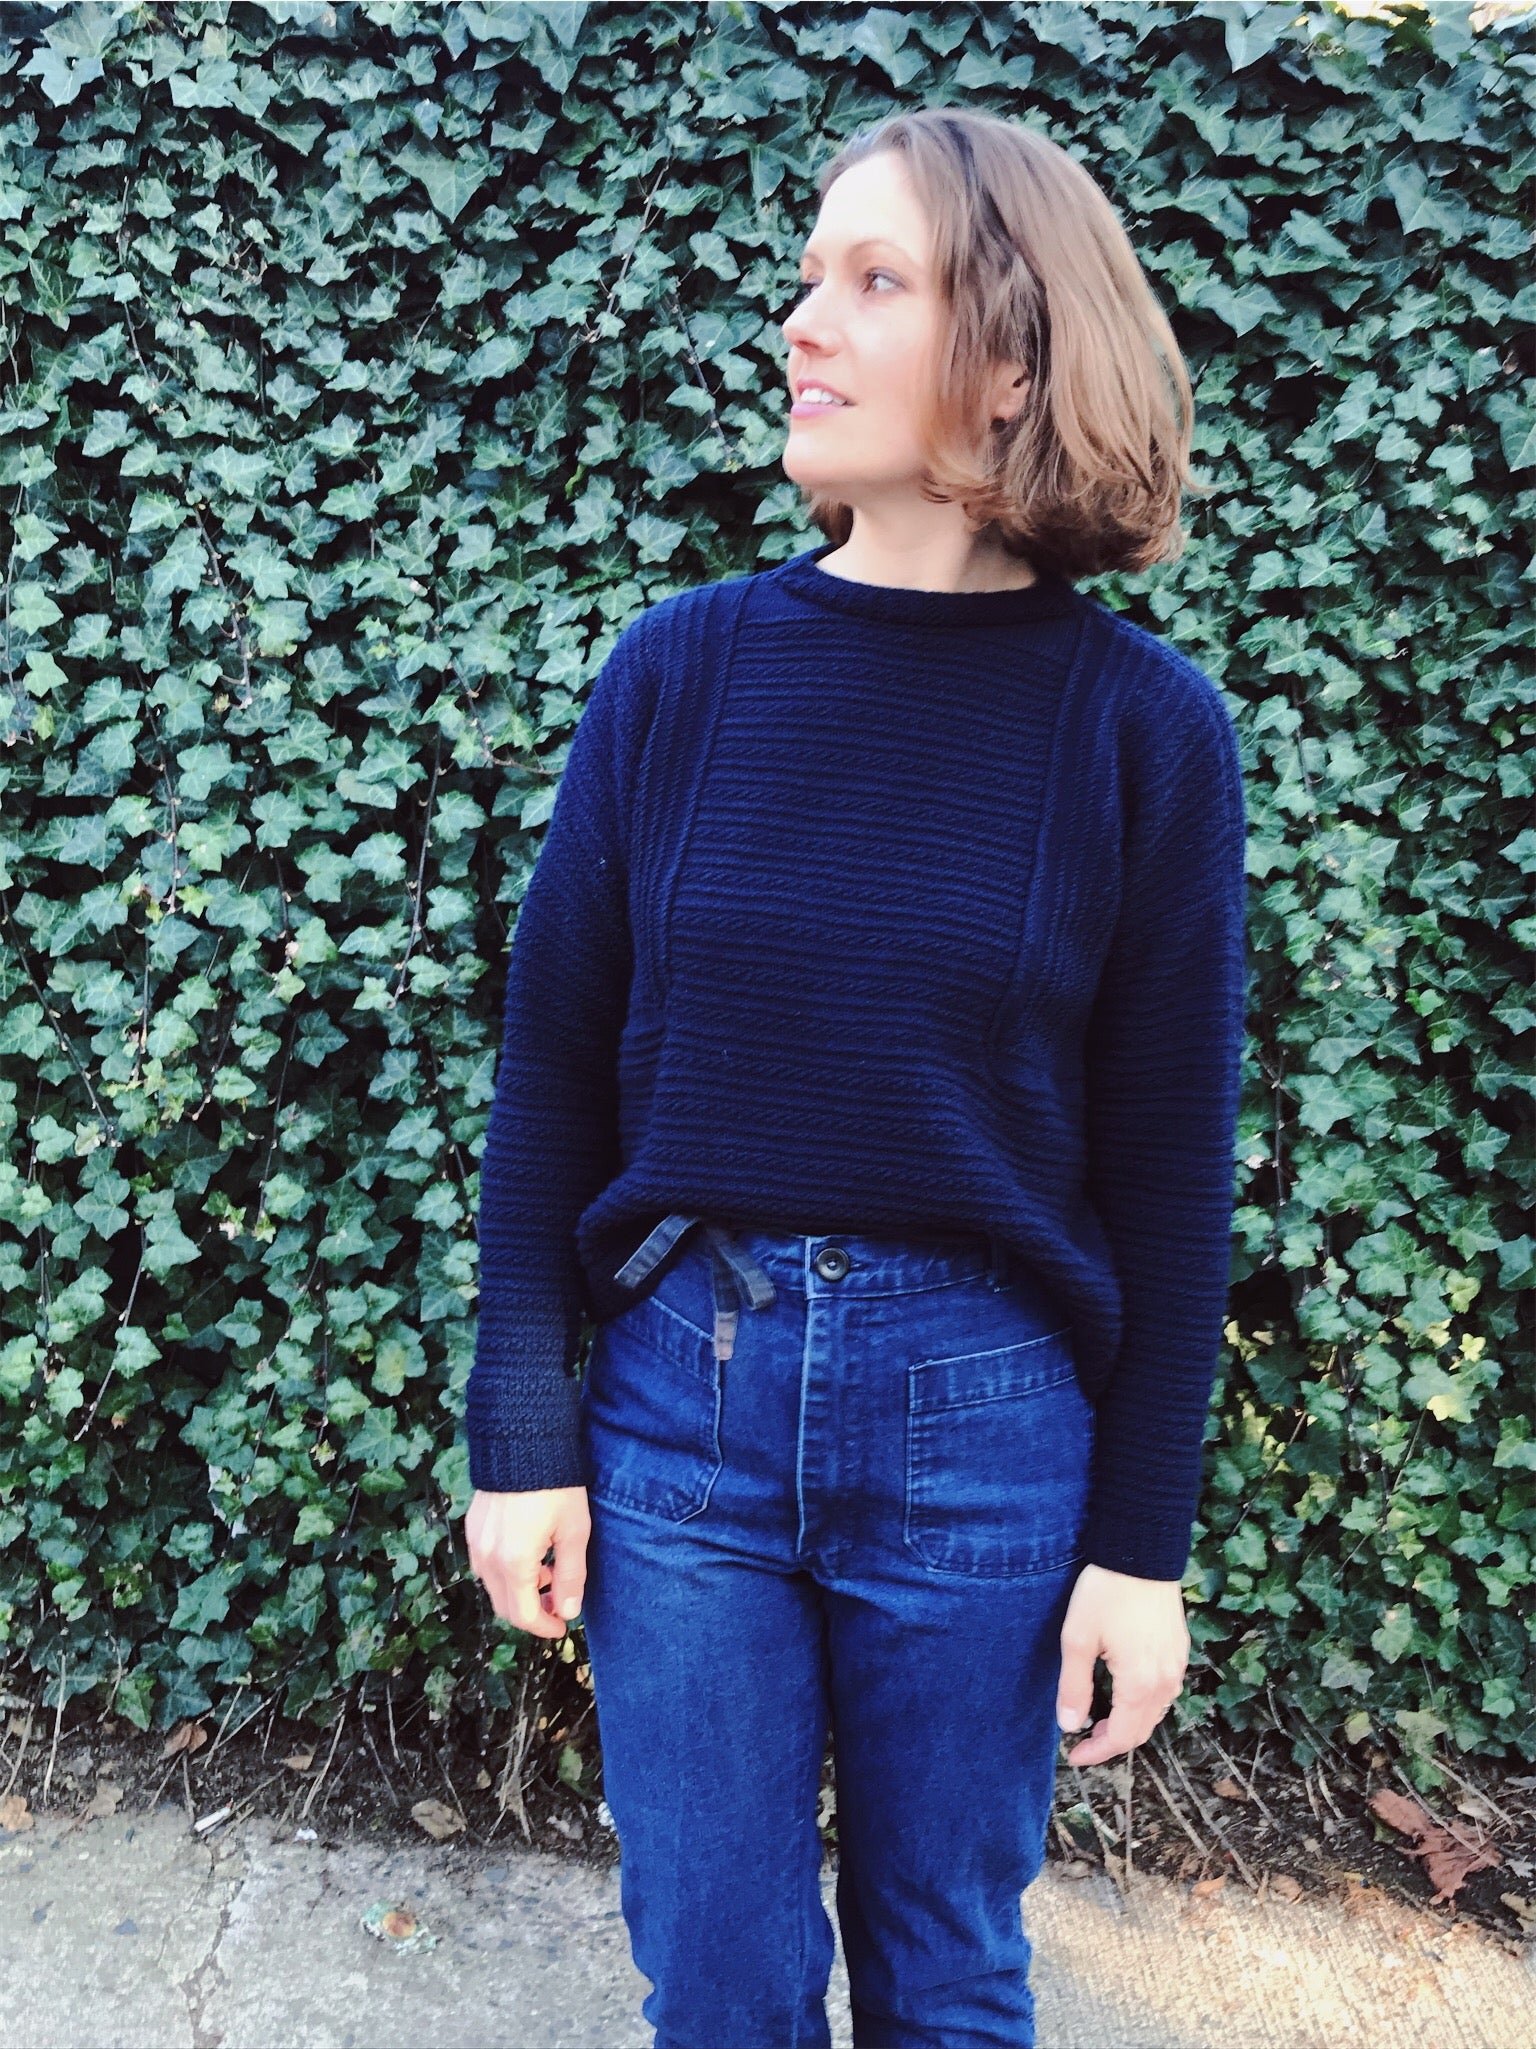 lis wearing her hand knit wool weidlinger sweater